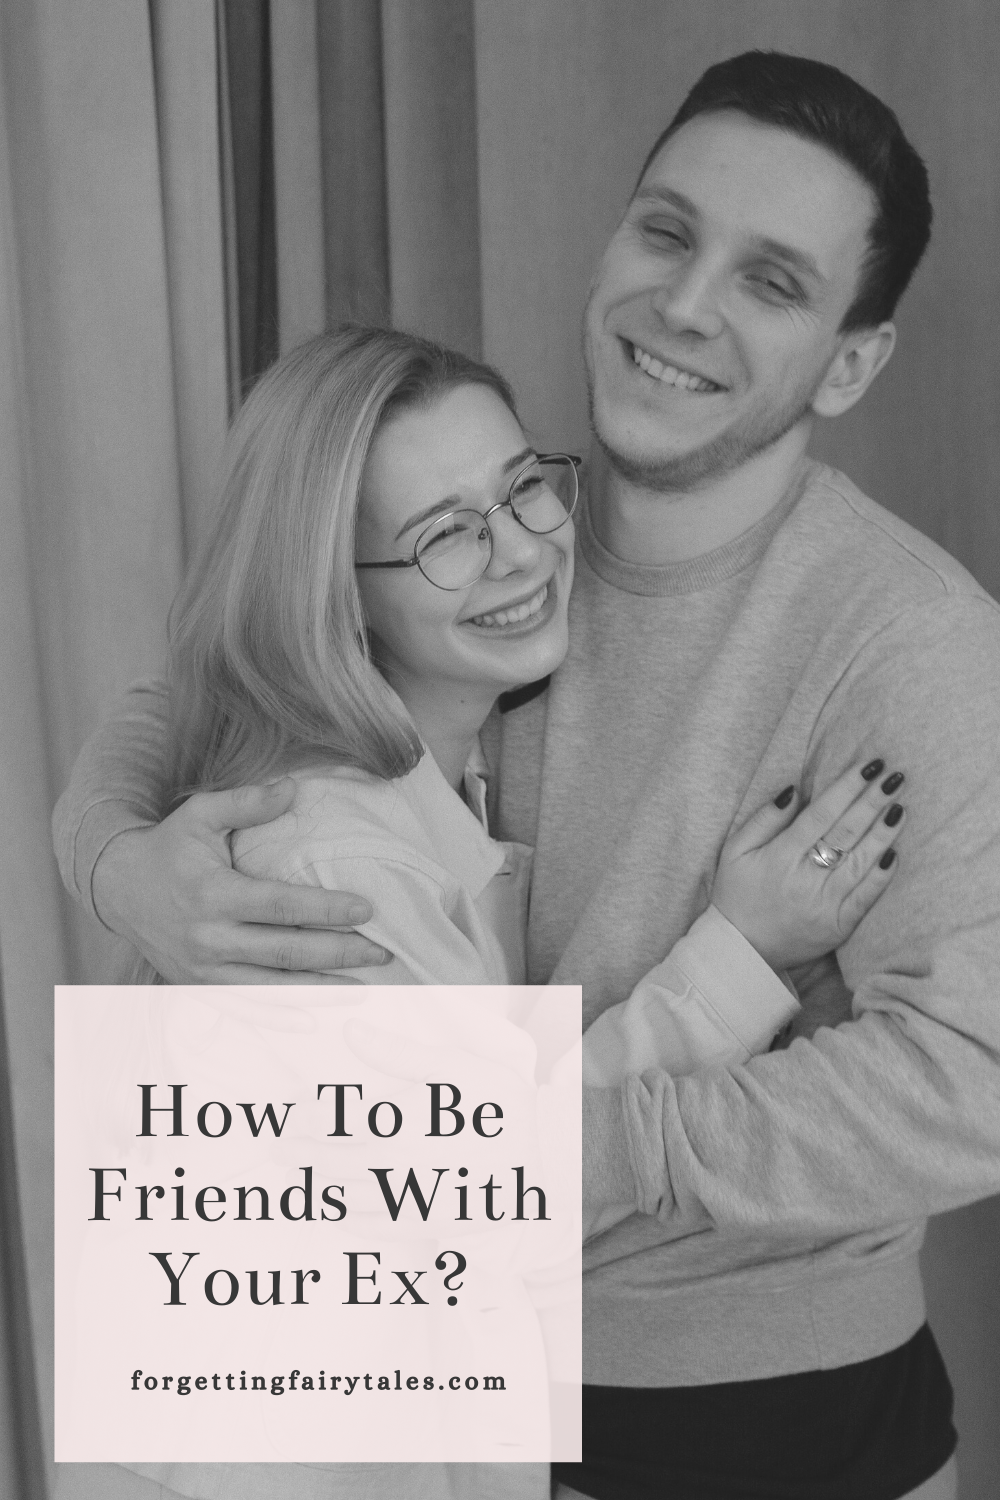 How To Be Friends With Your Ex